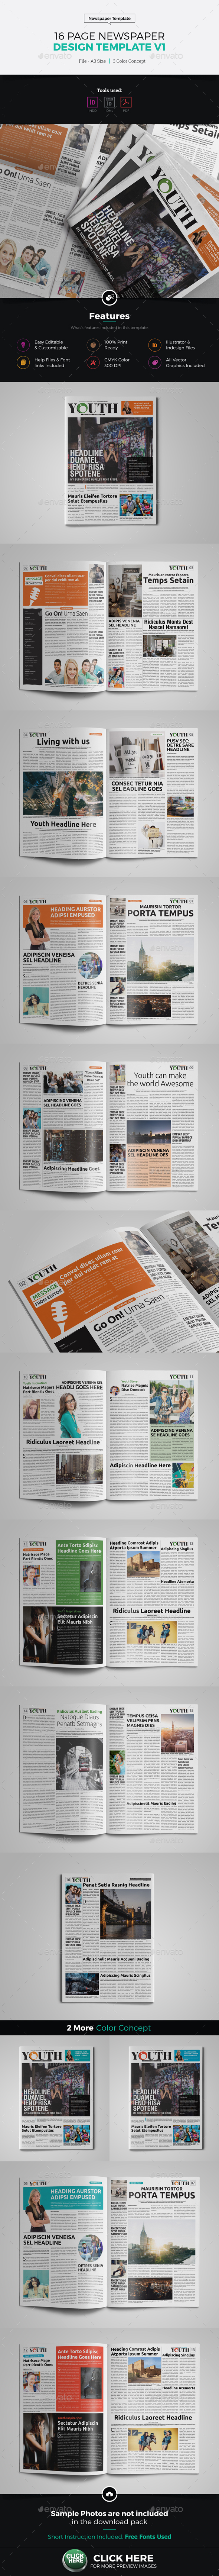 16 Page Newspaper InDesign v1 - Newsletters Print Templates